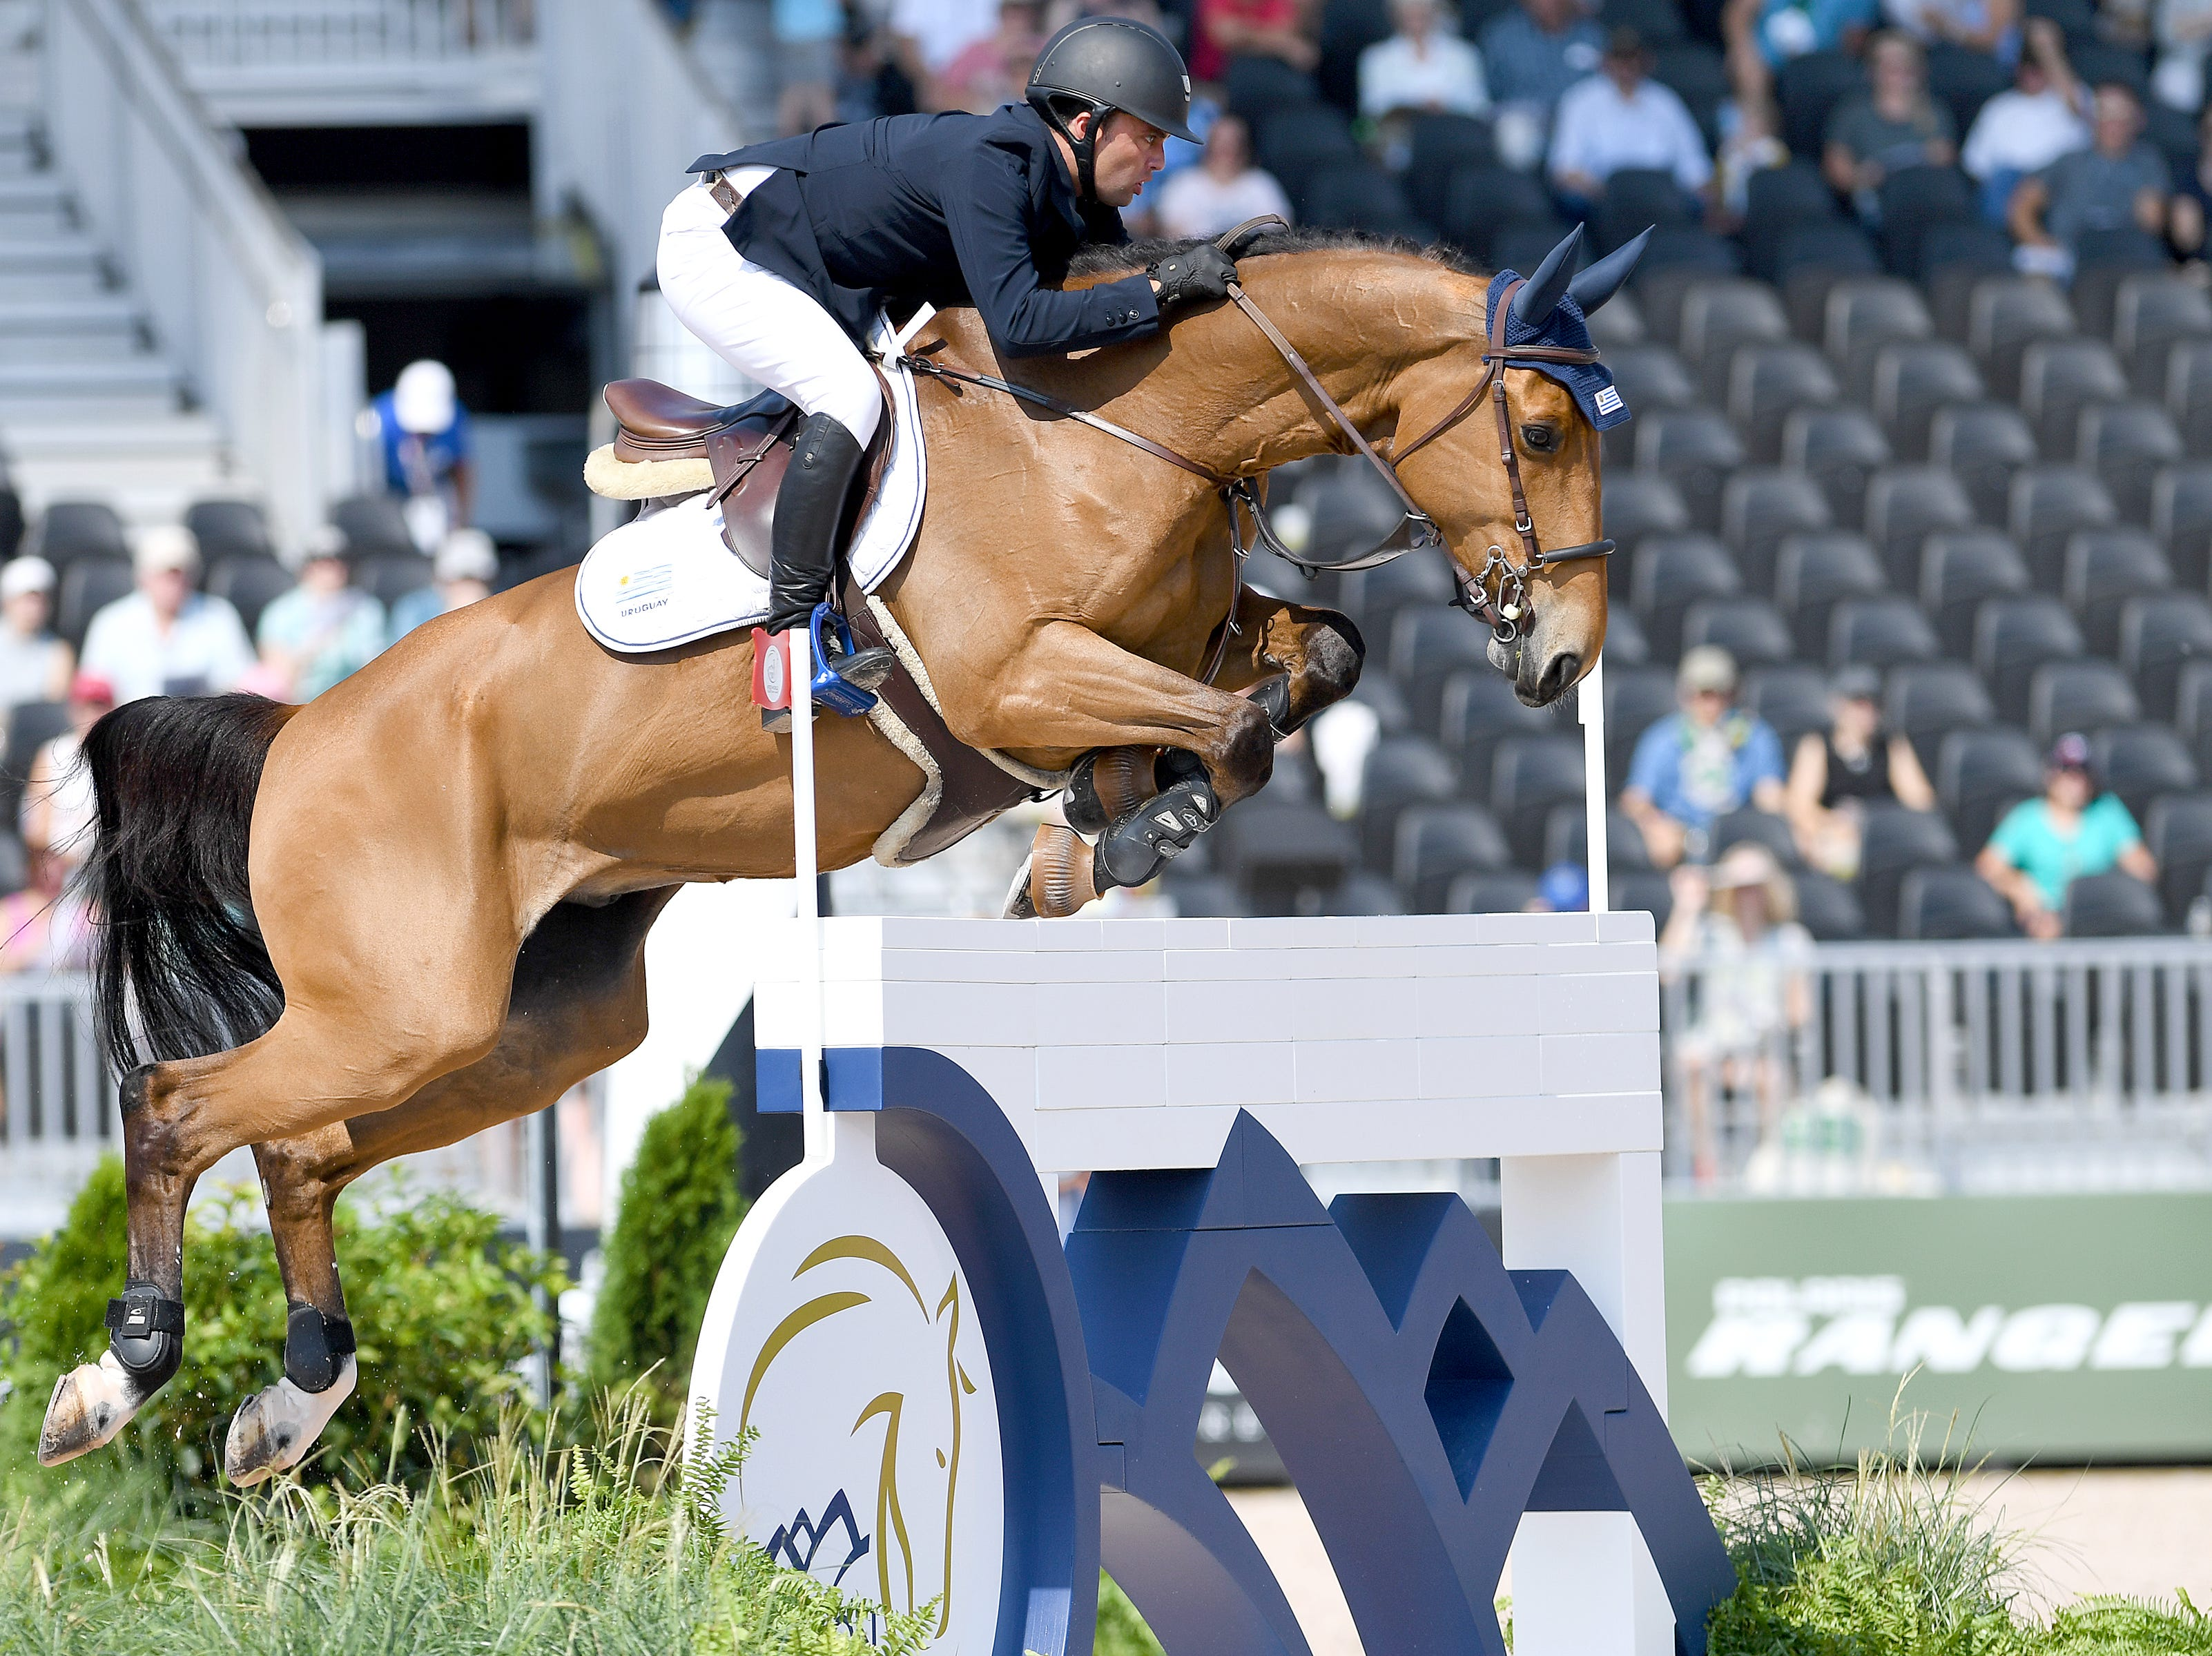 Uruguay's Marcelo Chirico Ferreira, on QH Baloudarc LF, competes in the team jumping competition at the FEI World Equestrian Games at the Tryon International Equestrian Center on Sept. 20, 2018.